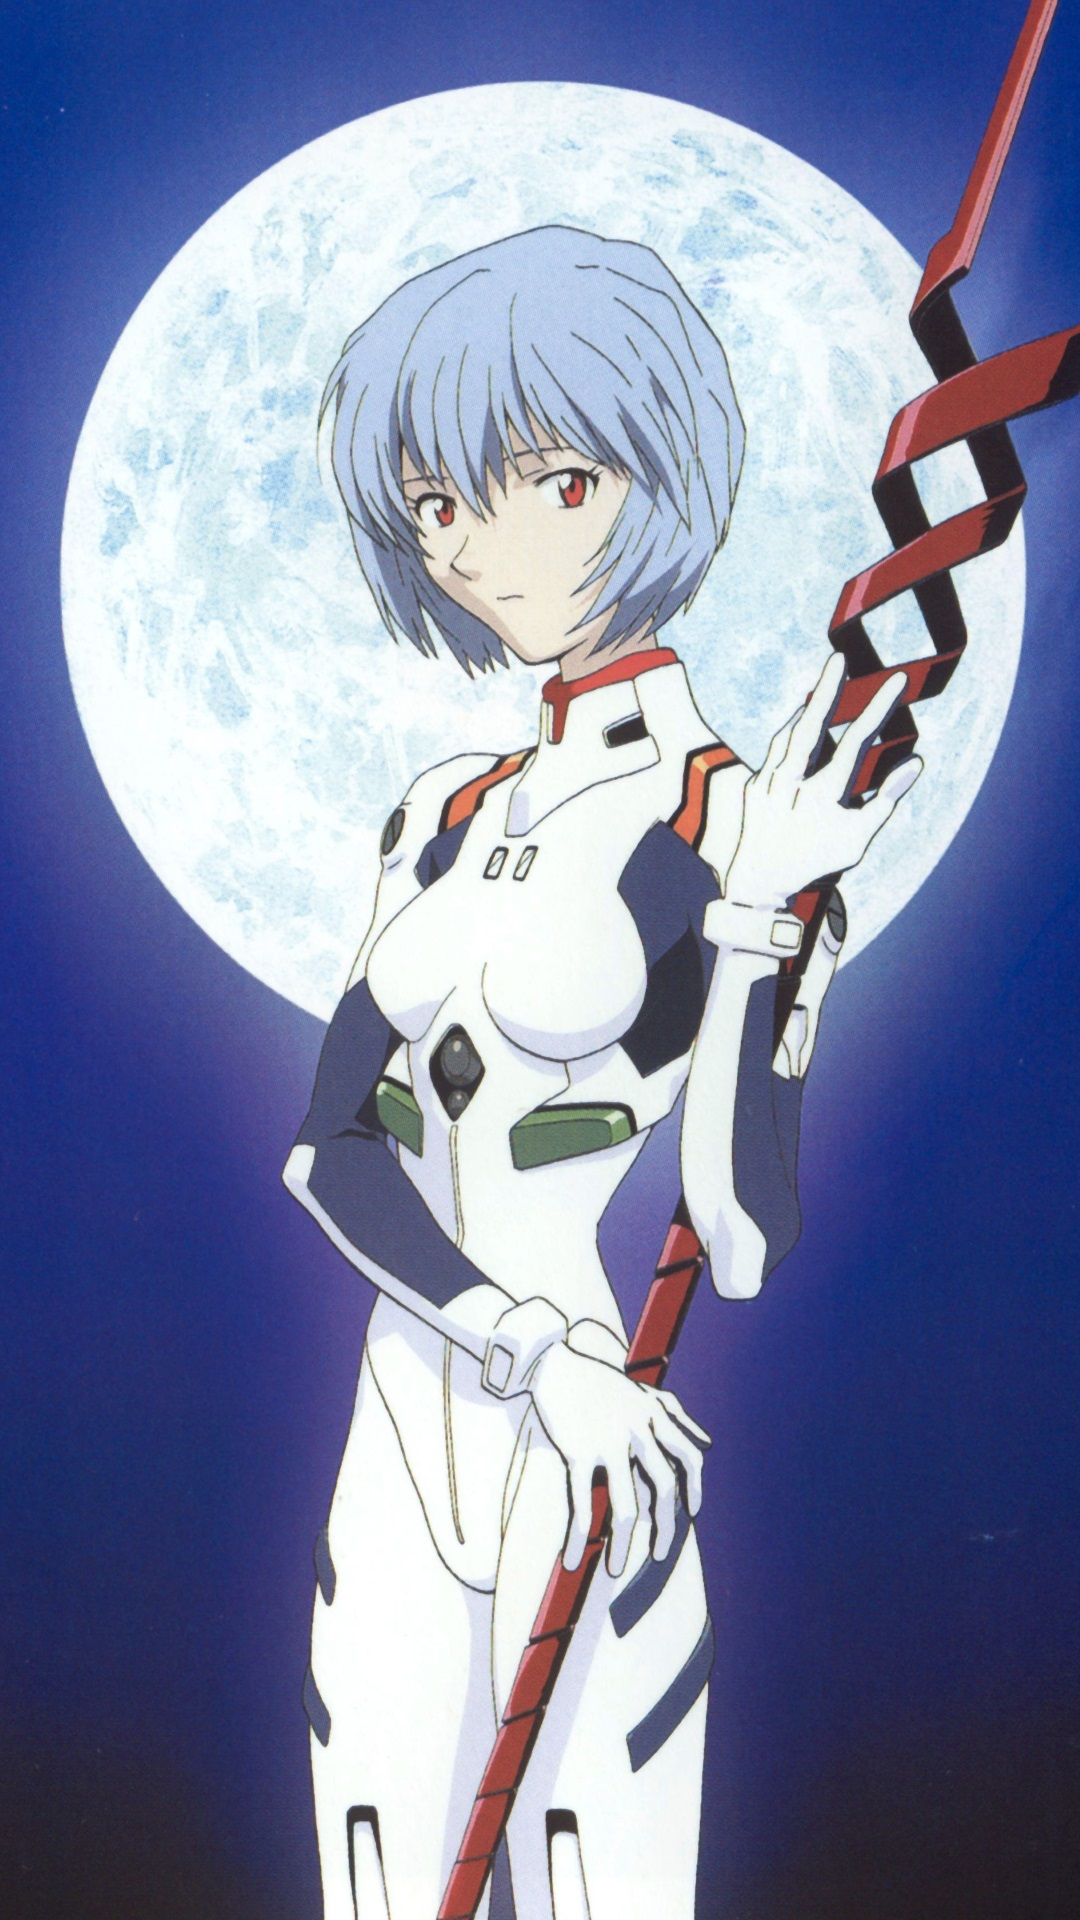 Neon Genesis Evangelion Rei Ayanami Iphone 6 Plus Wallpaper 1080x1920 on coolest iphone wallpapers